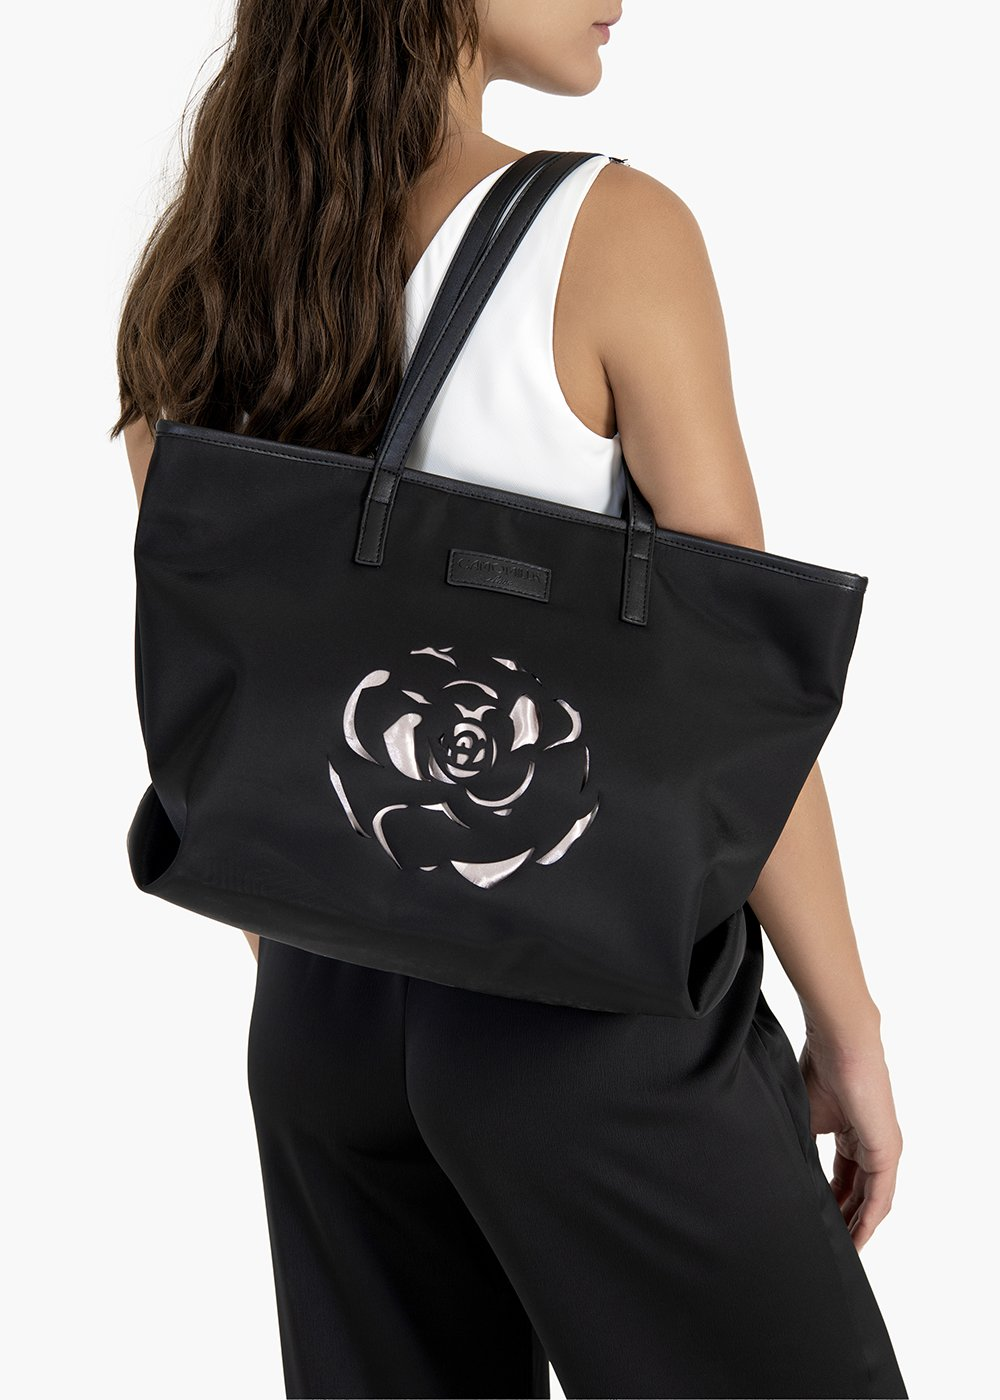 Boly nylon shopping bag with lasered flower detail - Black / Polvere - Woman